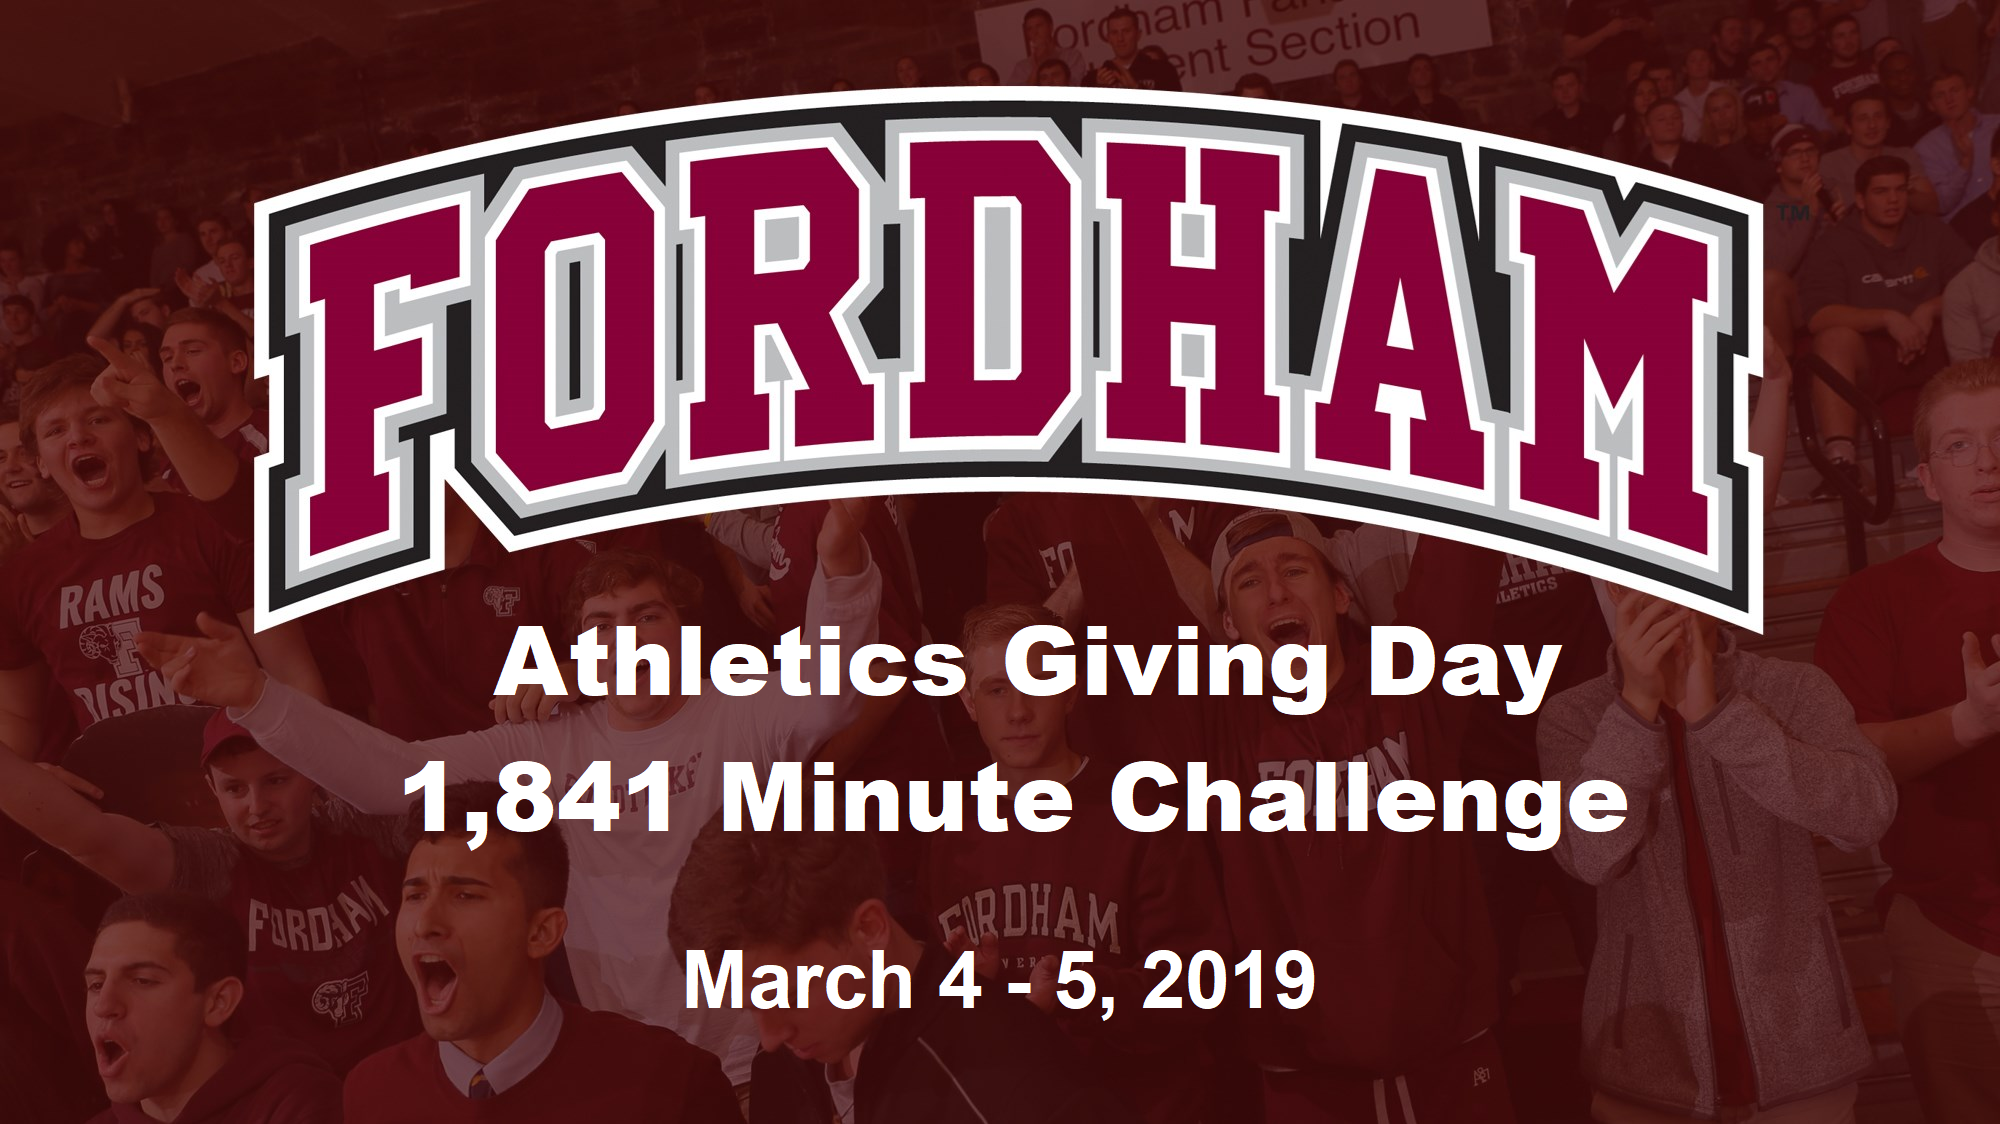 Save the Date for Fordham Athletics Giving Day: March 4-5, 2019